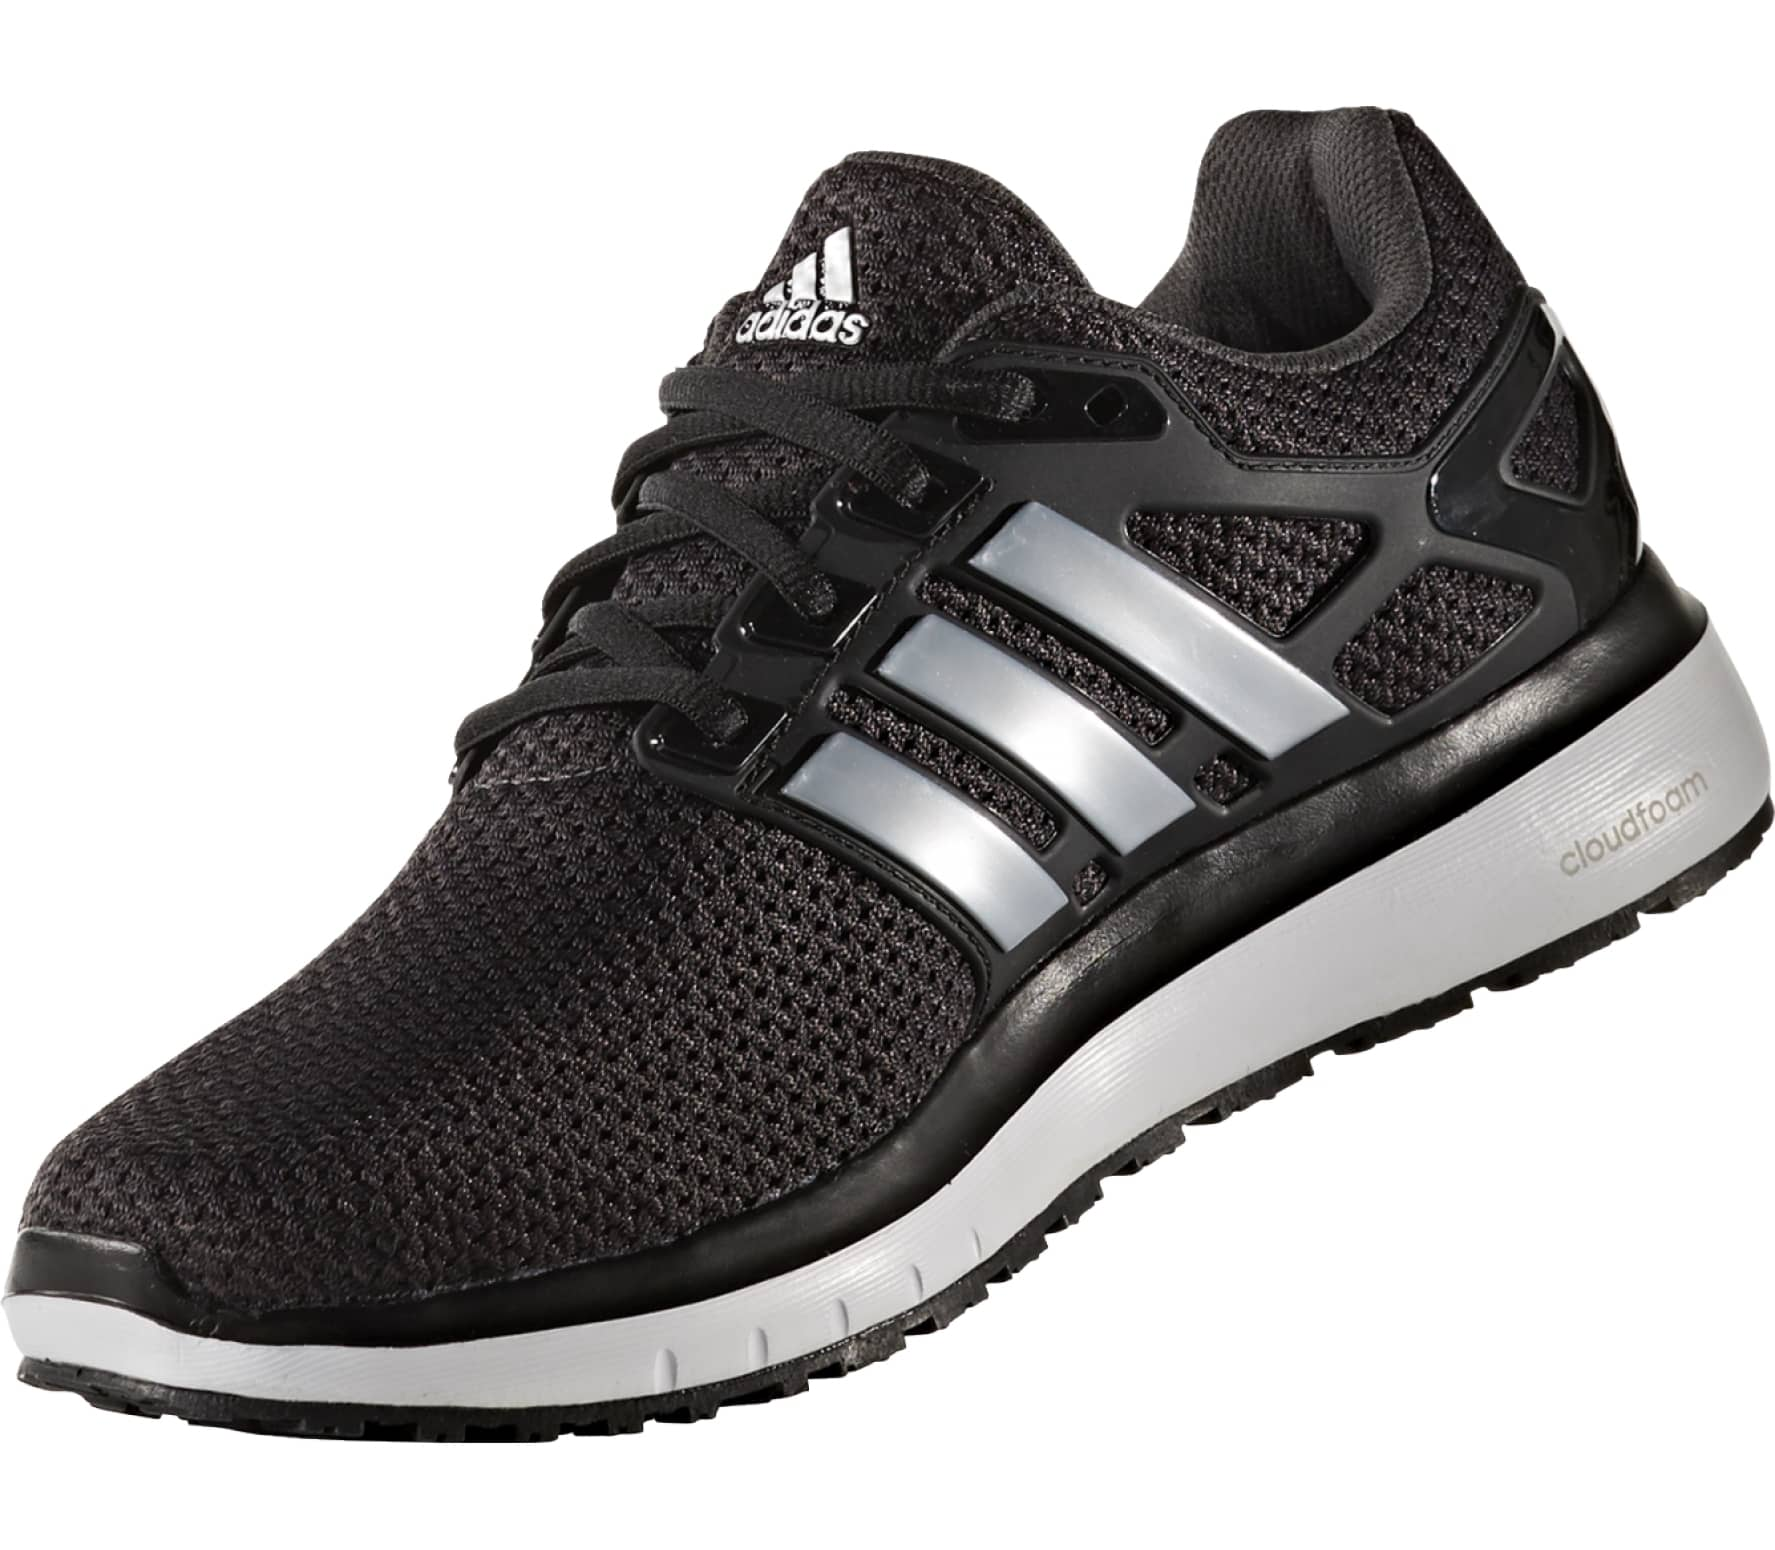 promo code 06758 625d7 ... Adidas - Energy Cloud WTC mens running shoes (blacksilver) the cheapest  34f8a ea293 ...